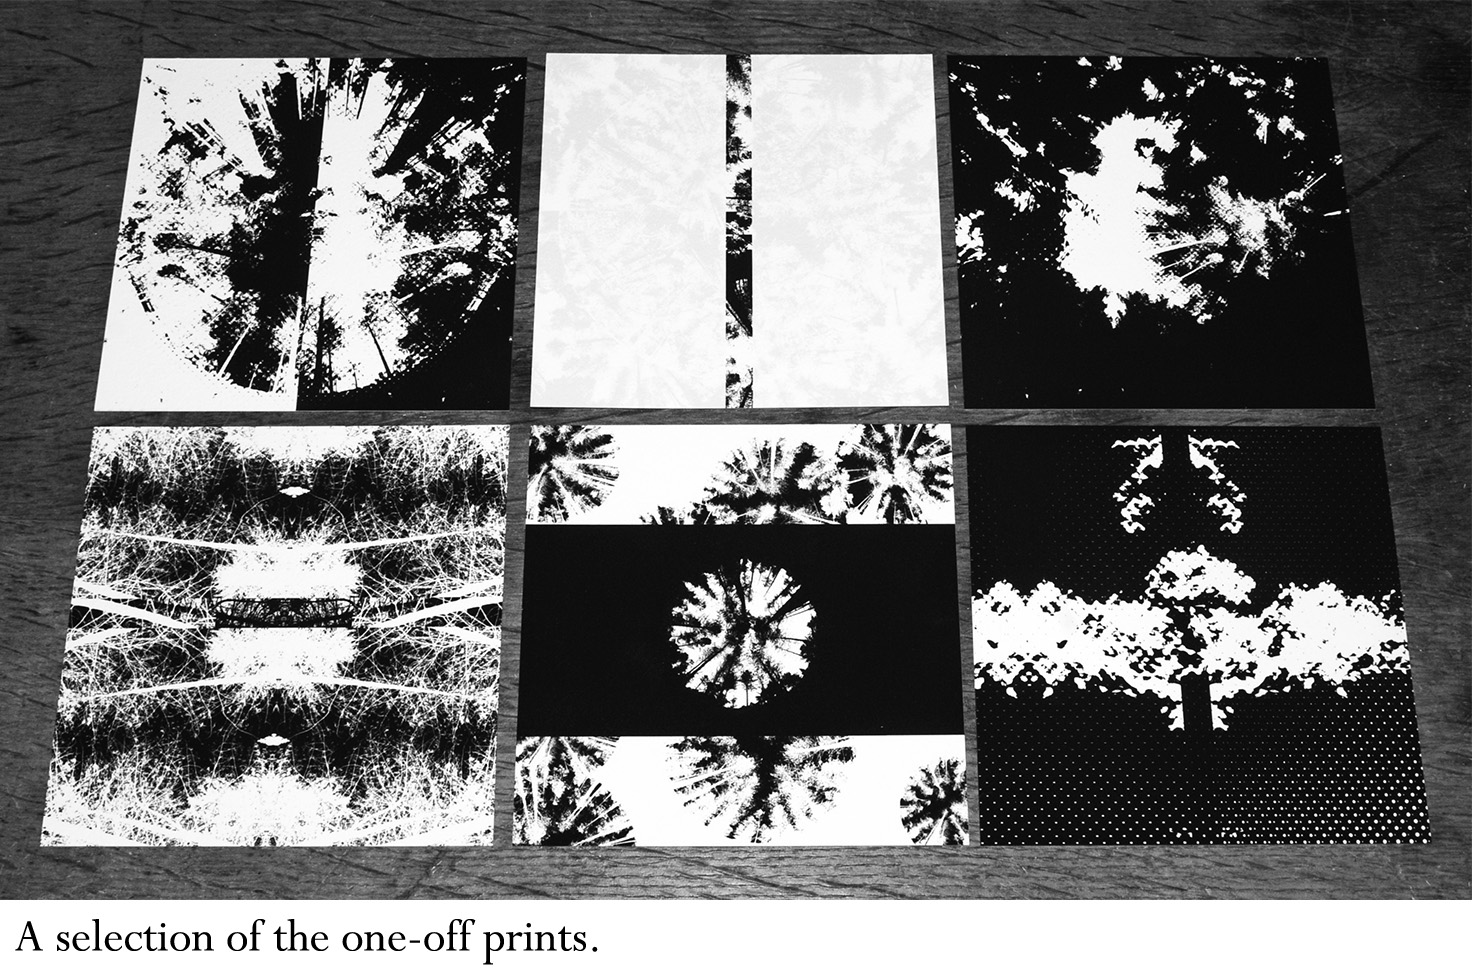 the-forest-the-wald-night-edition-one-off-prints-a-year-in-the-country-1-with-text